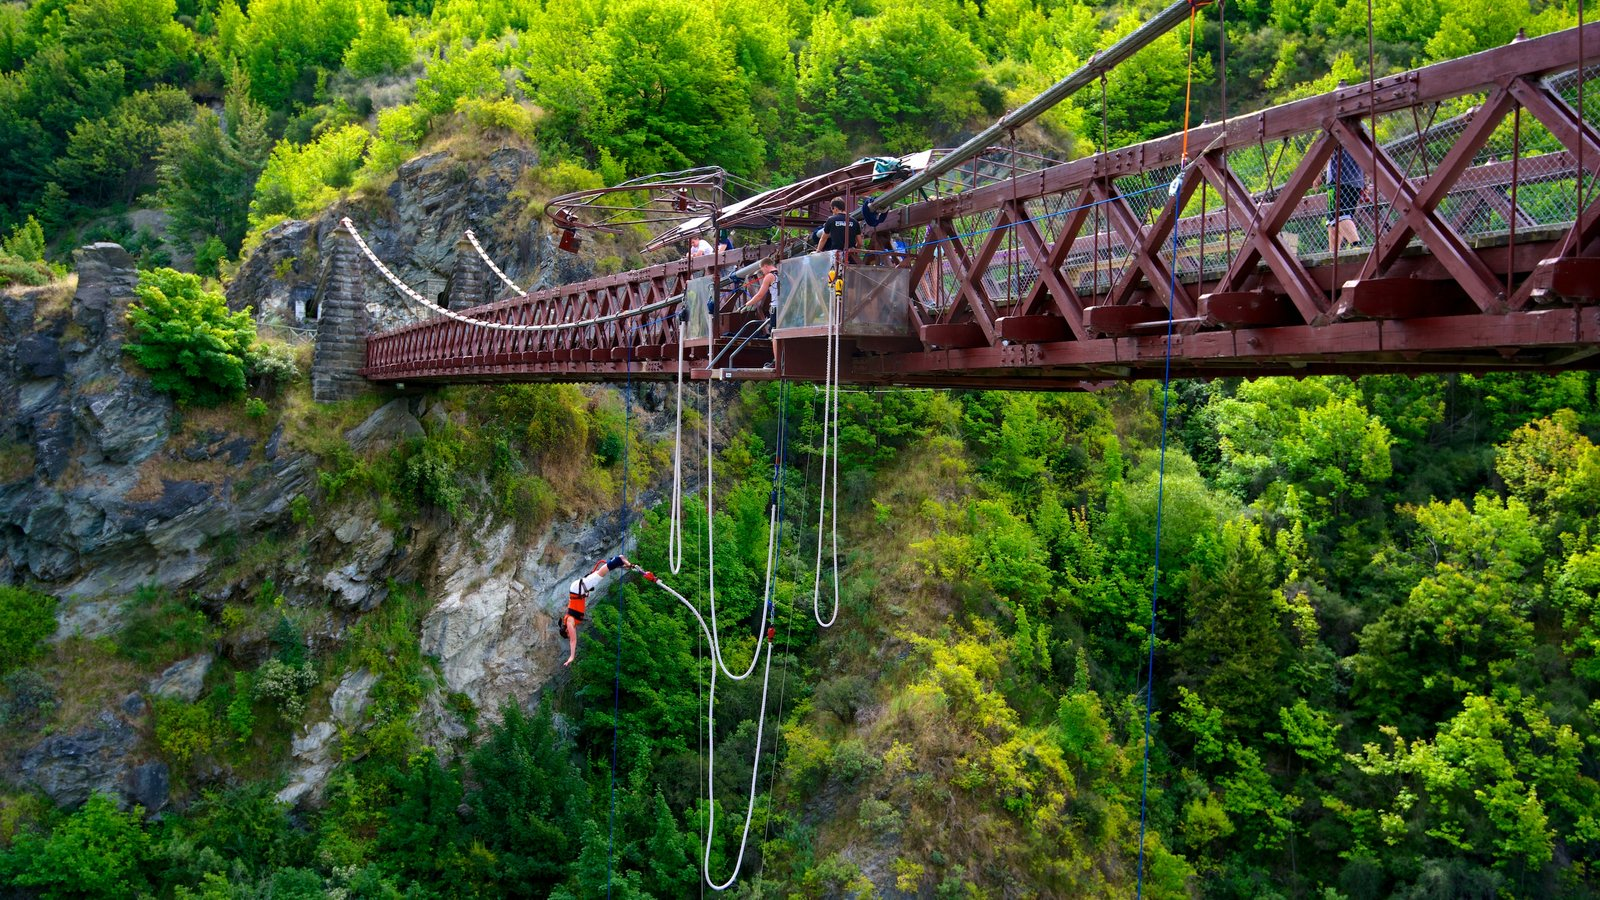 Kawarau Suspension Bridge which includes a suspension bridge or treetop walkway and bungee jumping